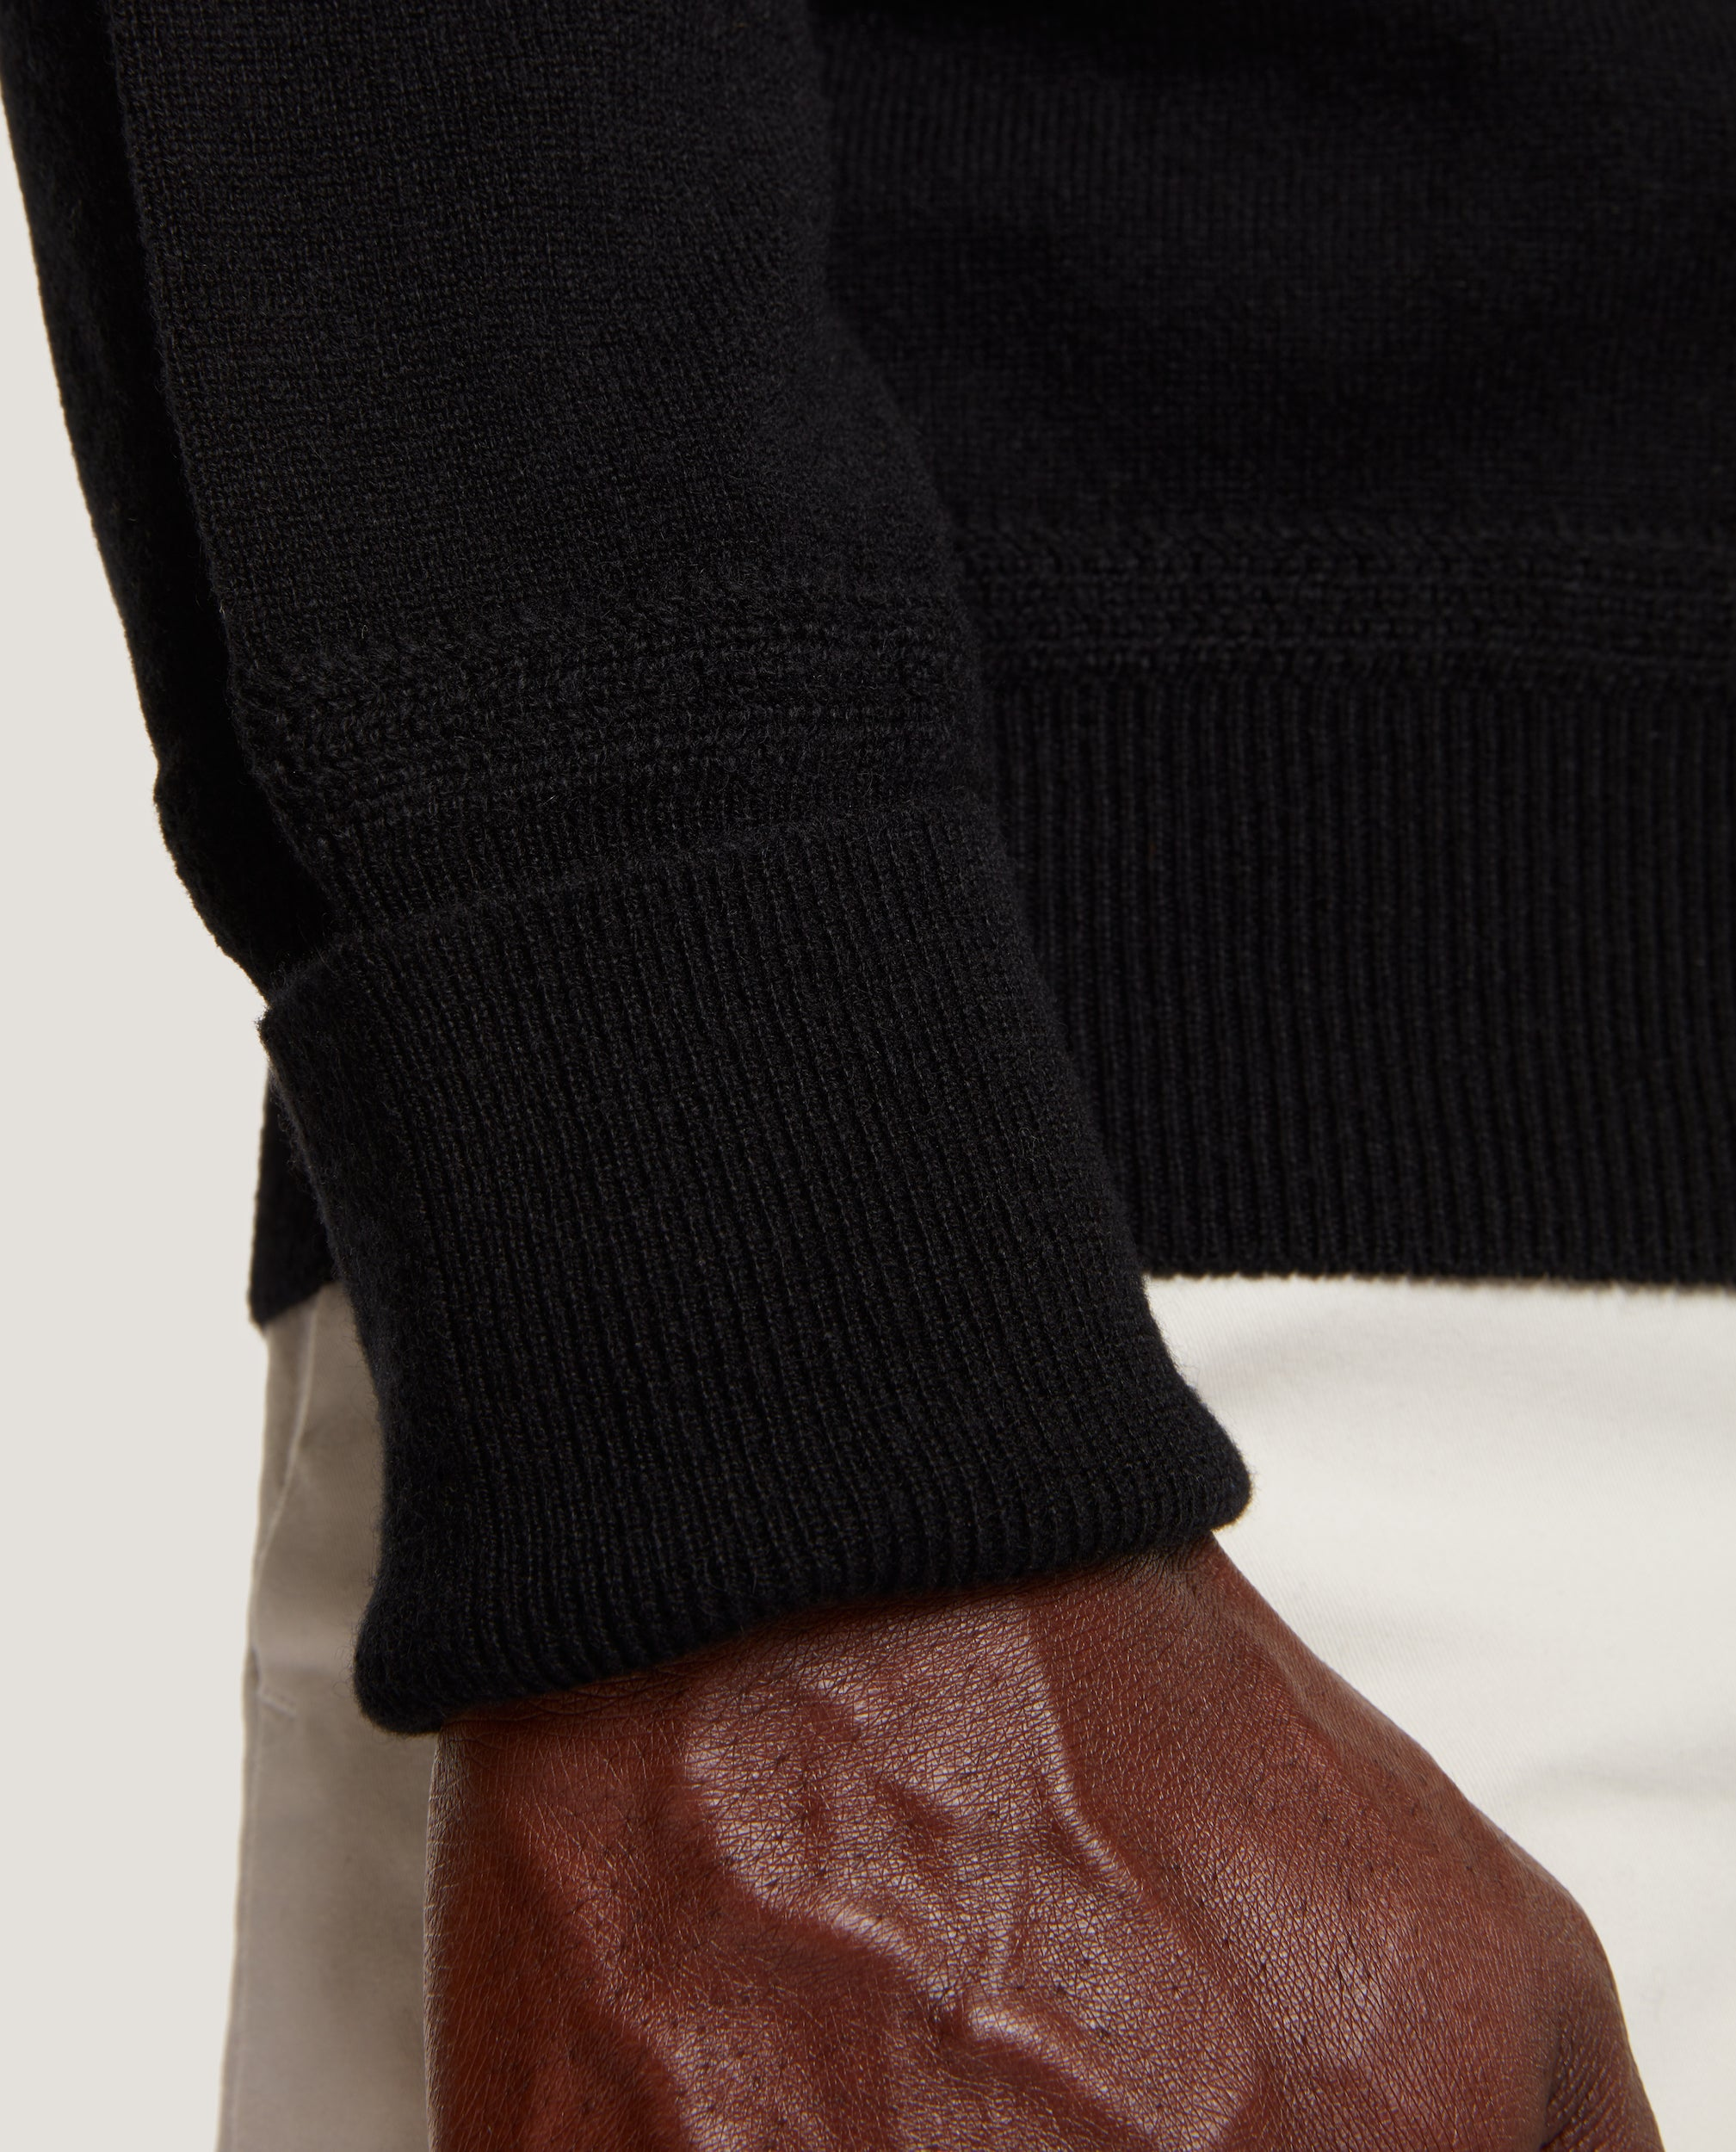 CESAIRE Crewneck sweater | 100% Cashmere | Black